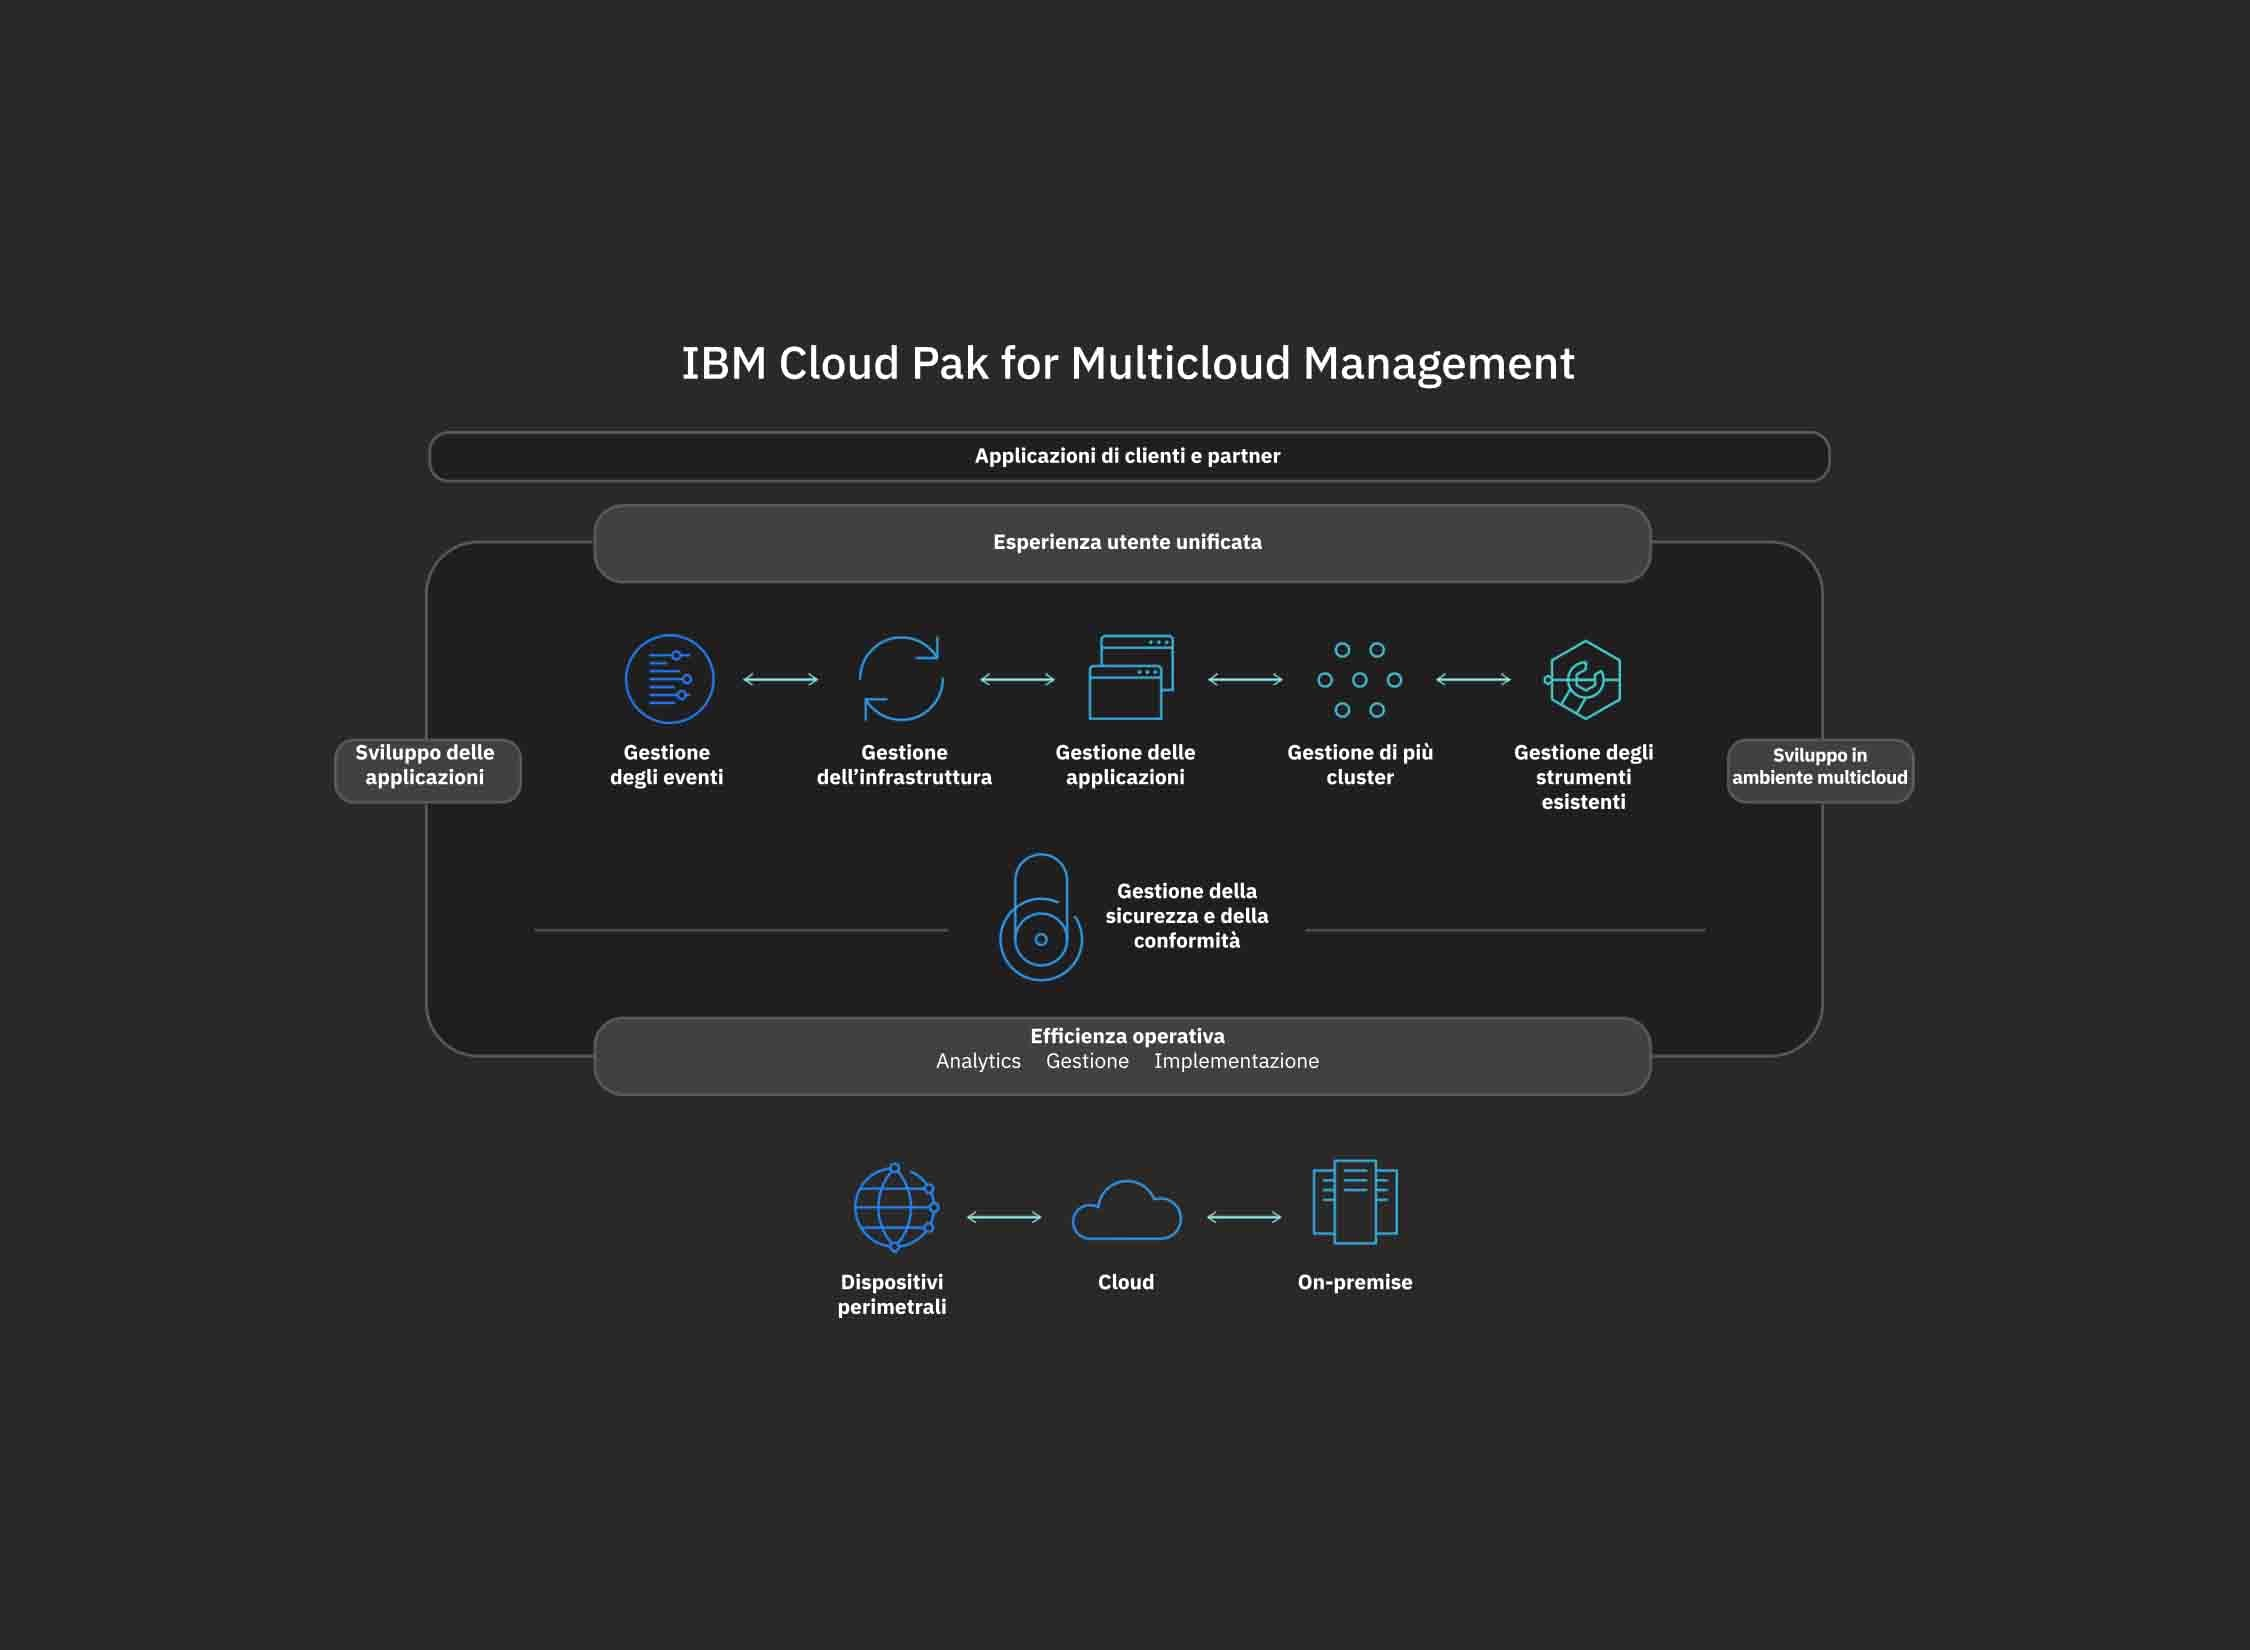 Diagramma di flusso per le operazioni di IBM Cloud Pak for Management